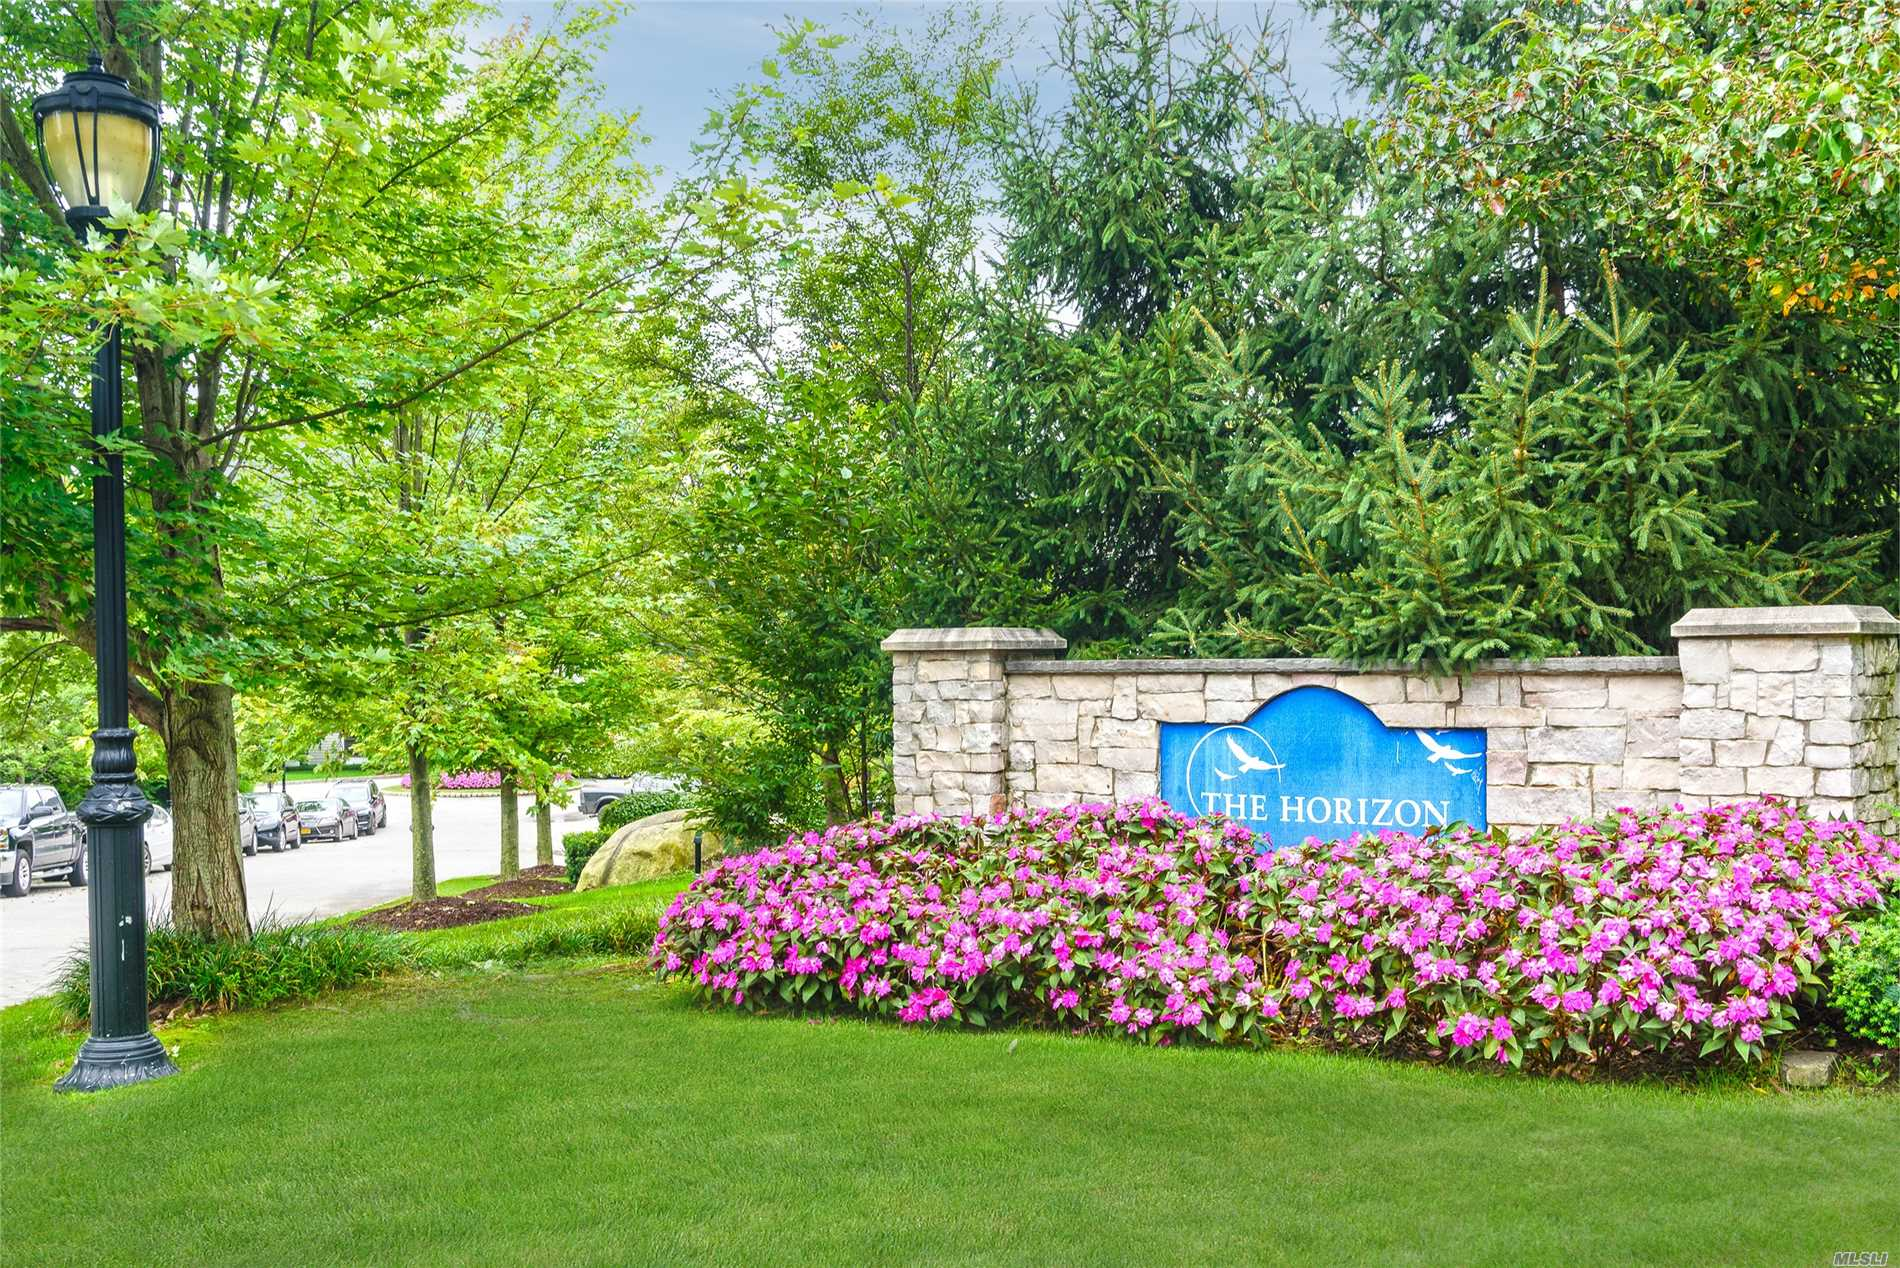 Roslyn. Luxury 55+ Community On Roslyn Harbor.2 Bedroom, 2 Full Bath, Hardwood Floors, Easy To Show. Washer And Dryer, Year Round Temperature Controlled, 24 Hour Doorman, Fitness Facility, Outdoor Pool, Indoor Garage Parking.